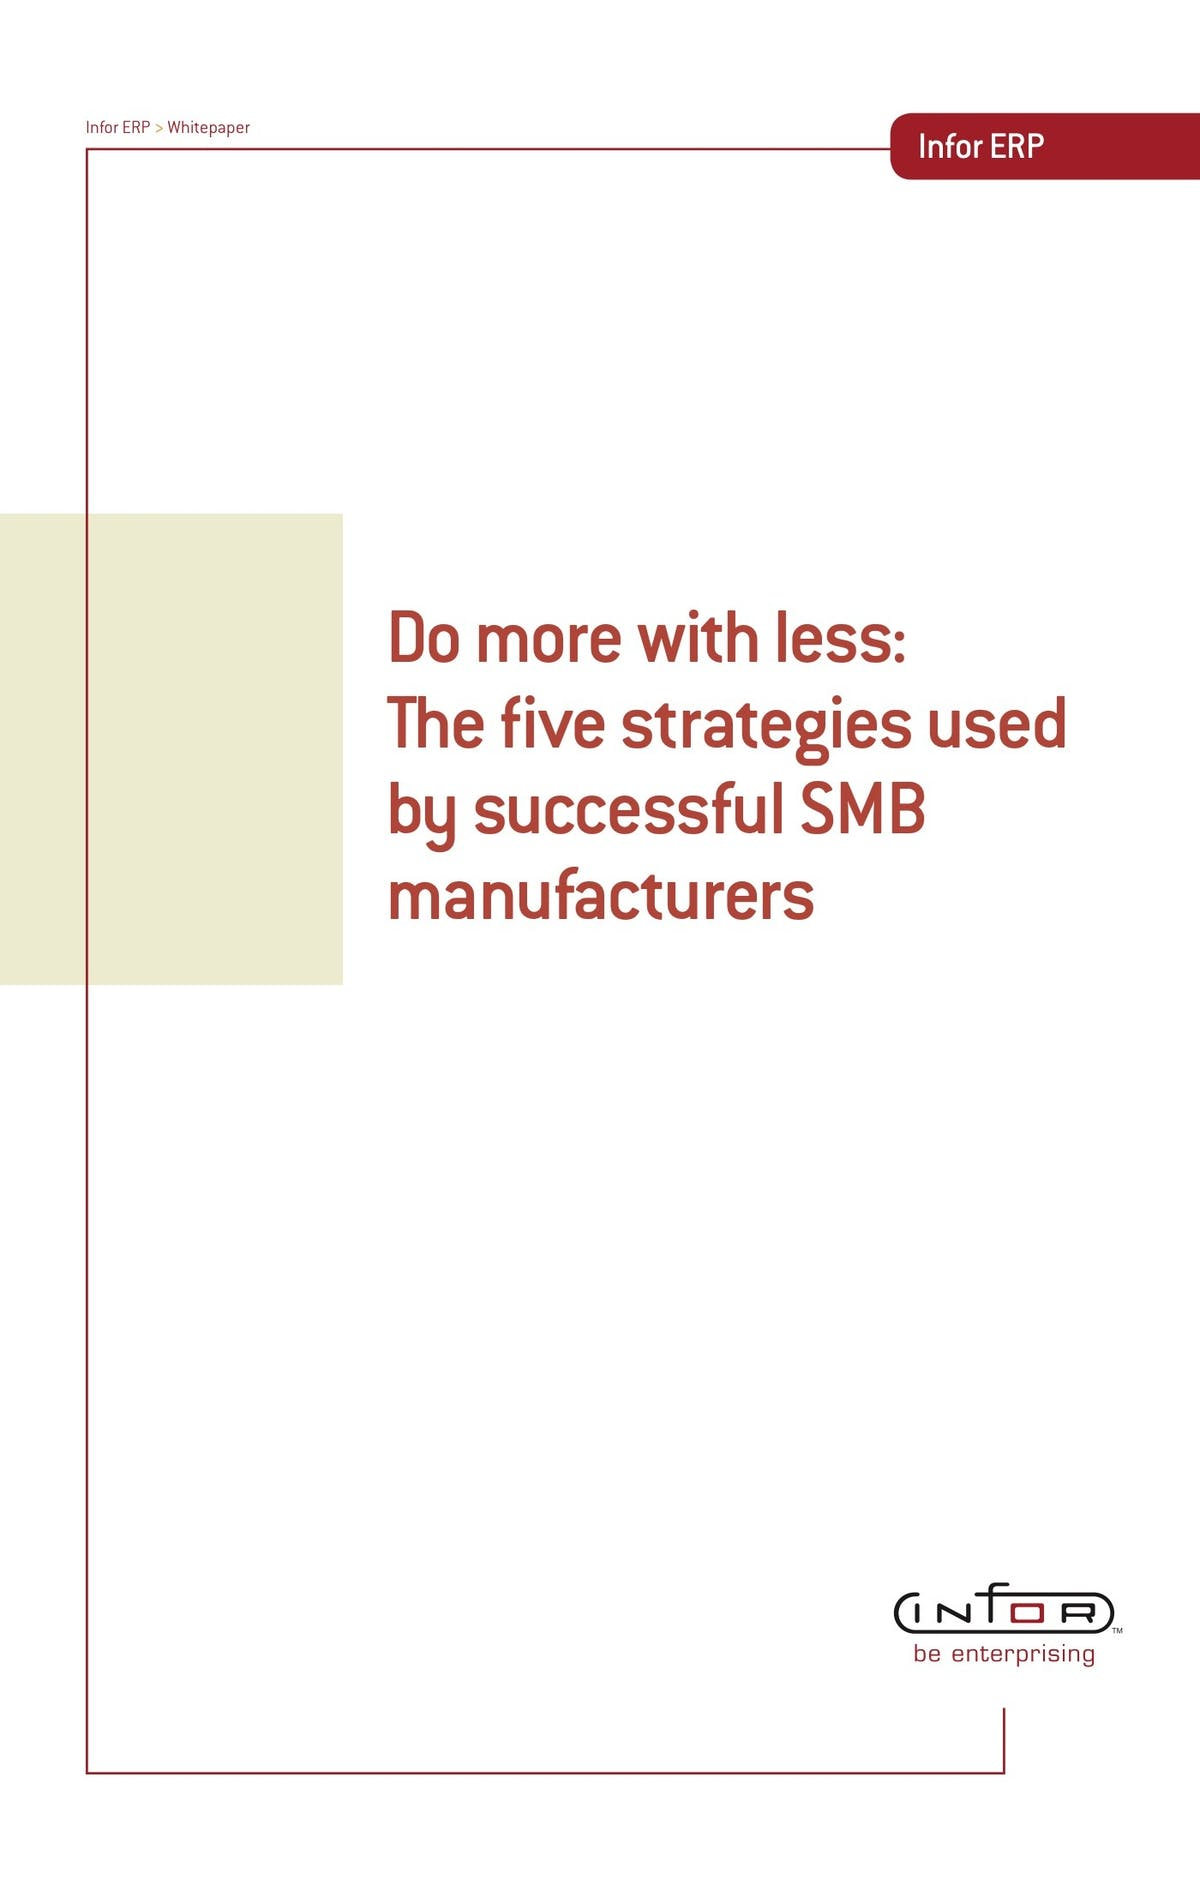 Infor VISUAL White Paper - Do More with Less: The Five Strategies Used by Successful SMB Manufacturers